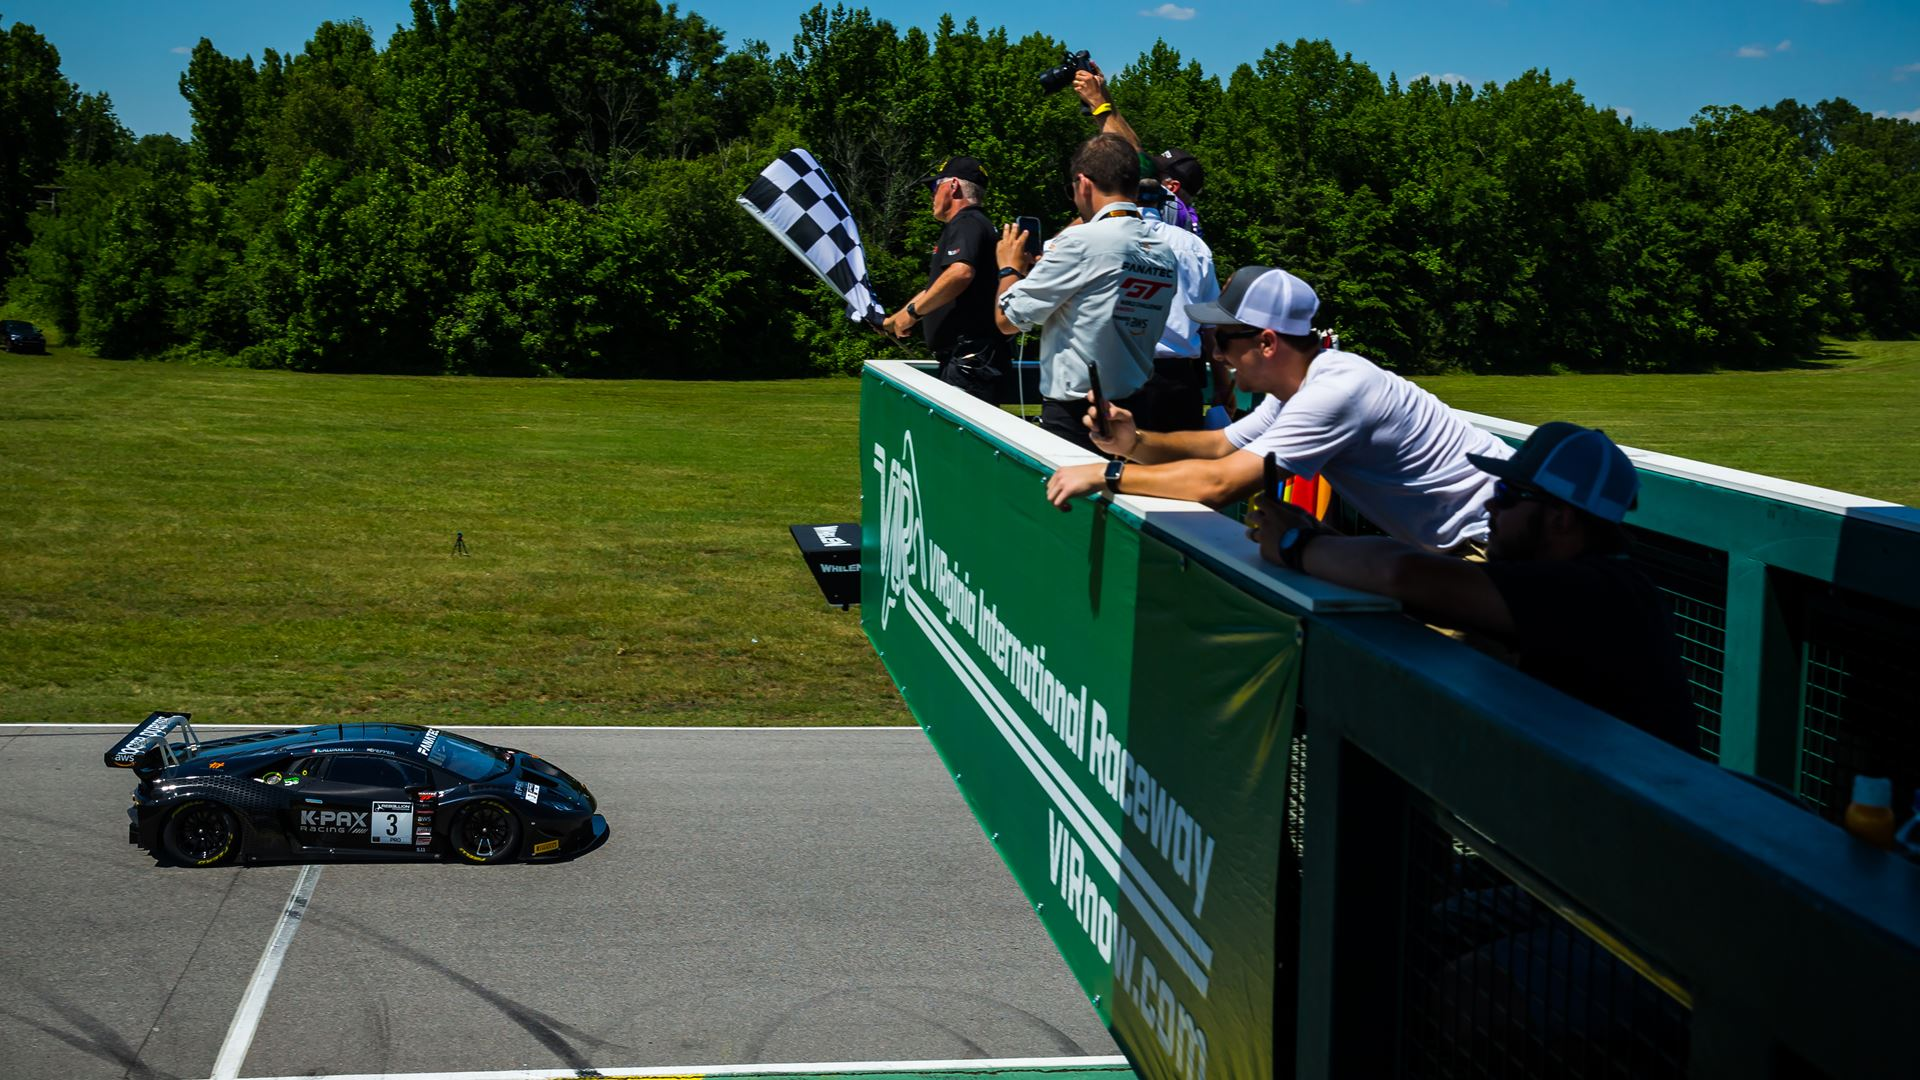 Lamborghini makes history with 100th GT3 victory thanks to another GT World Challenge America success - Image 7